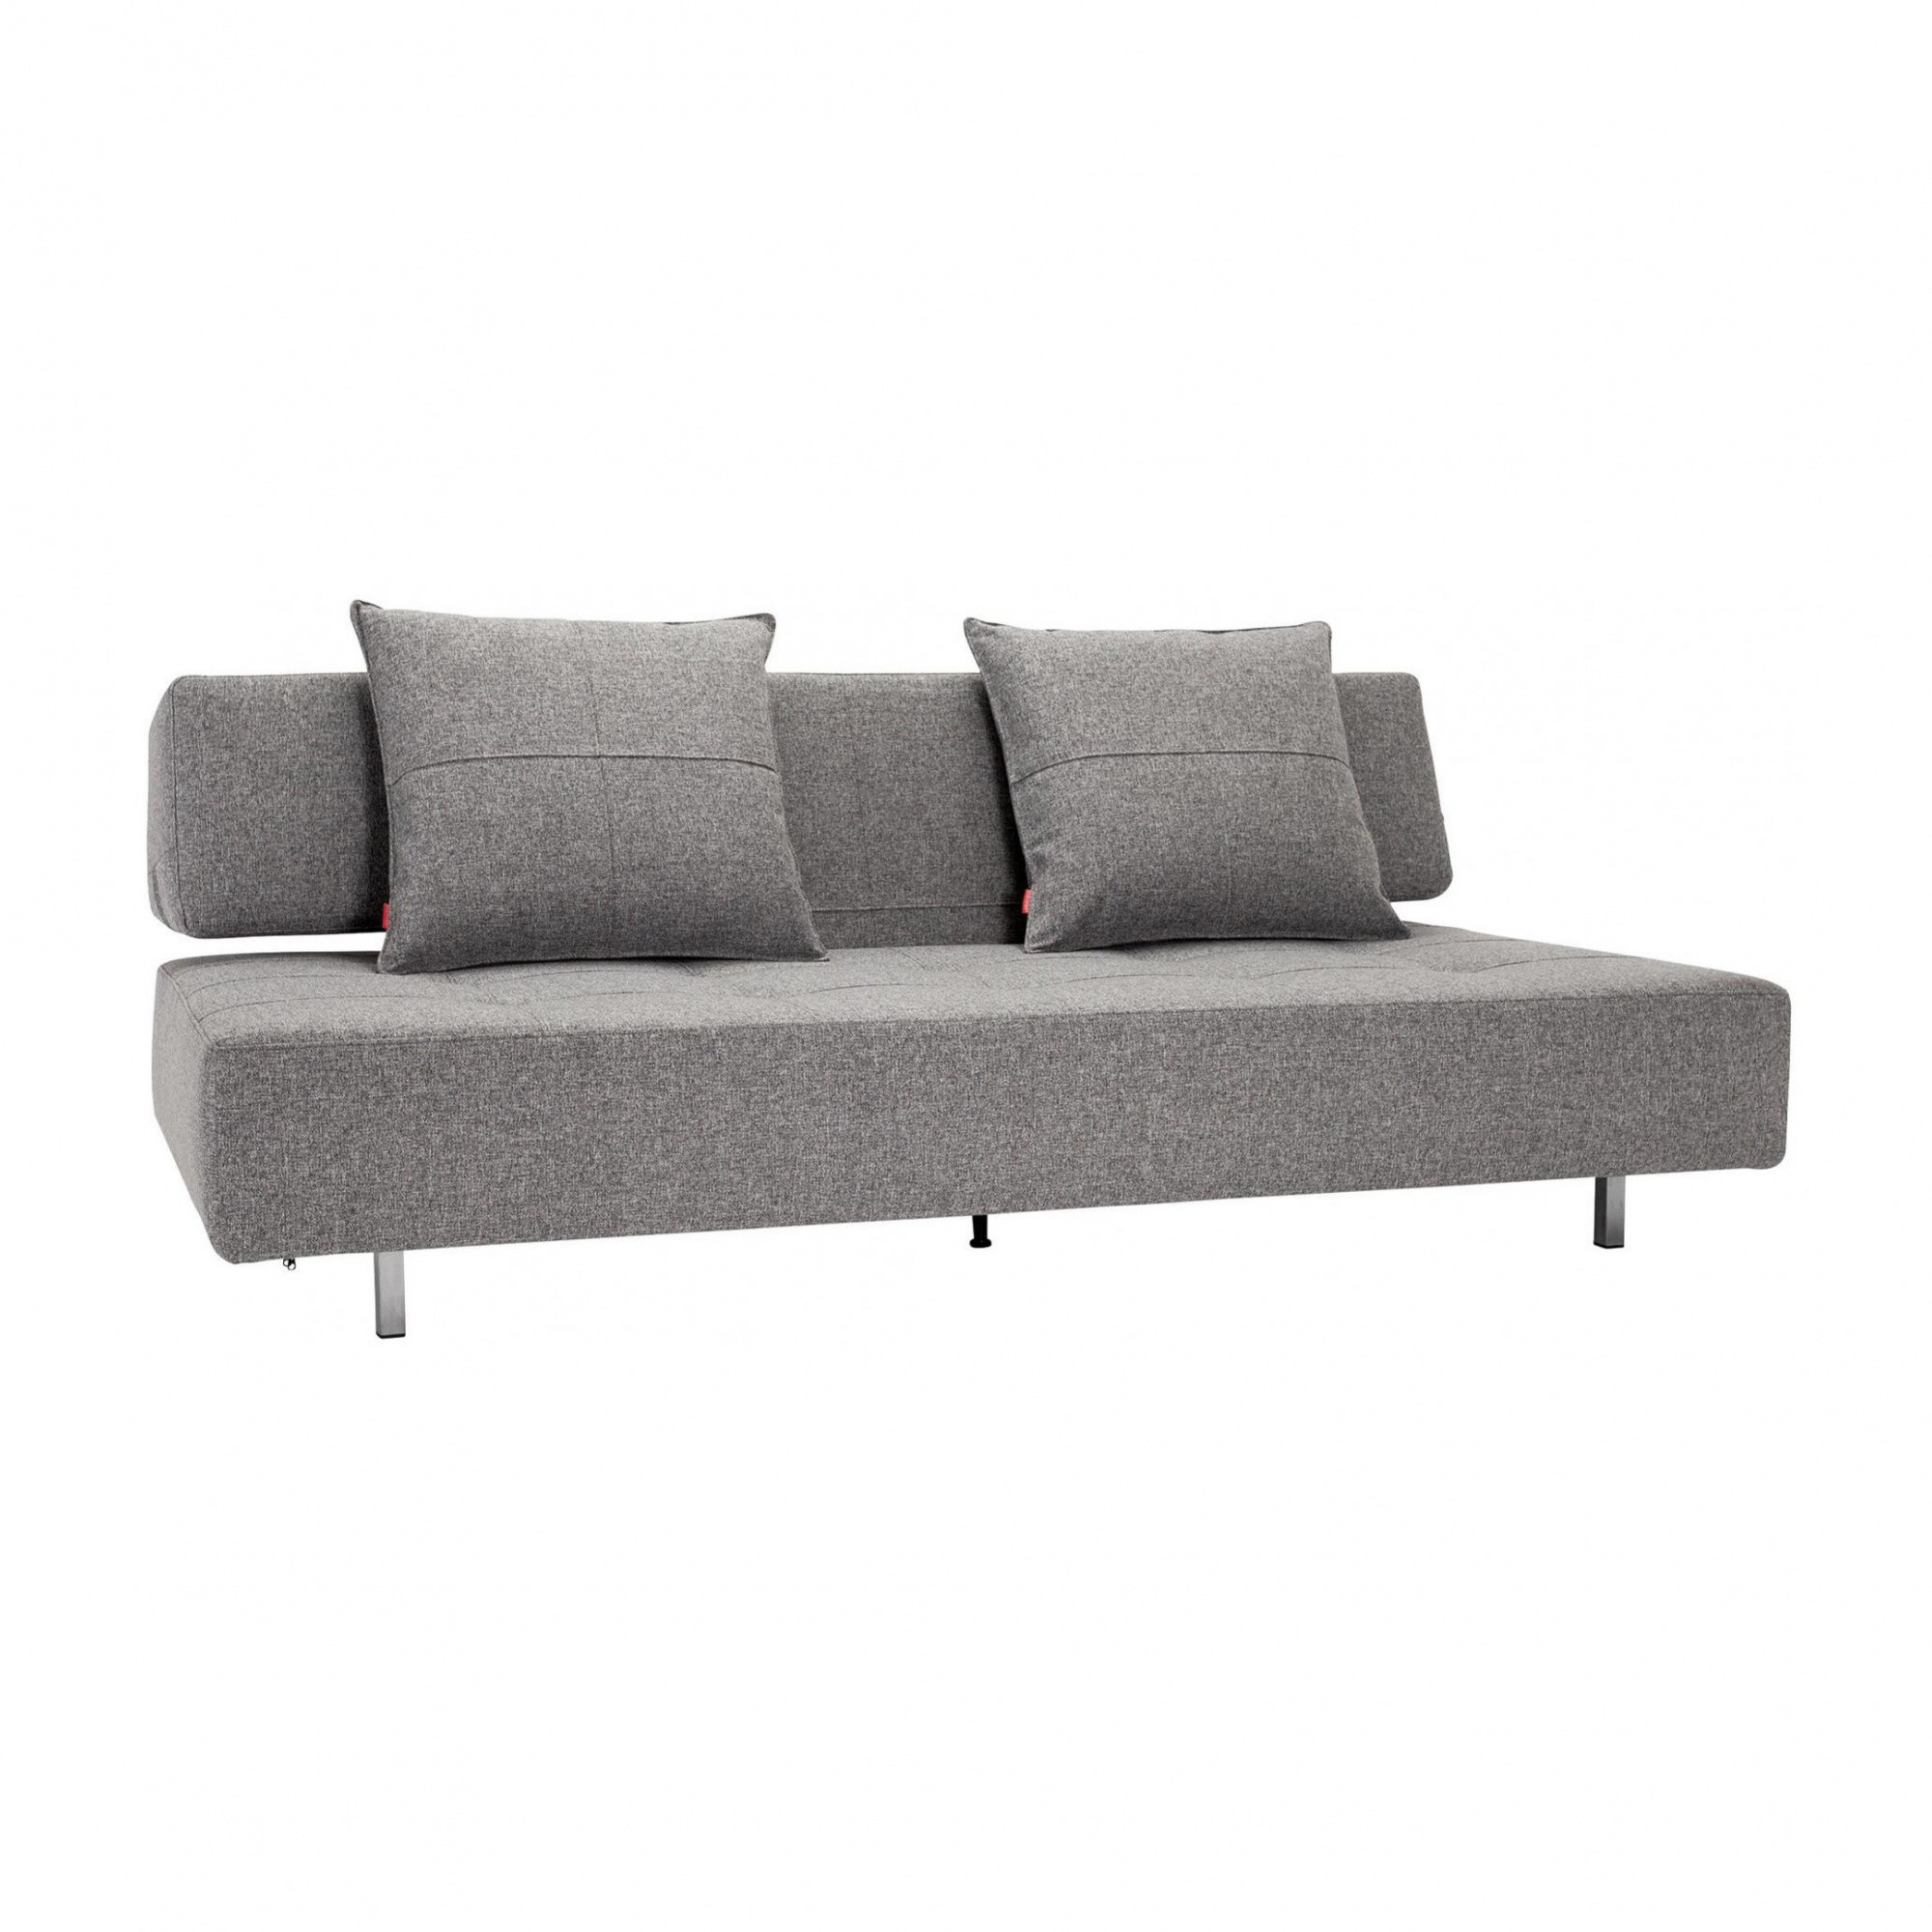 Innovation Long Horn Excess Sofa Bed